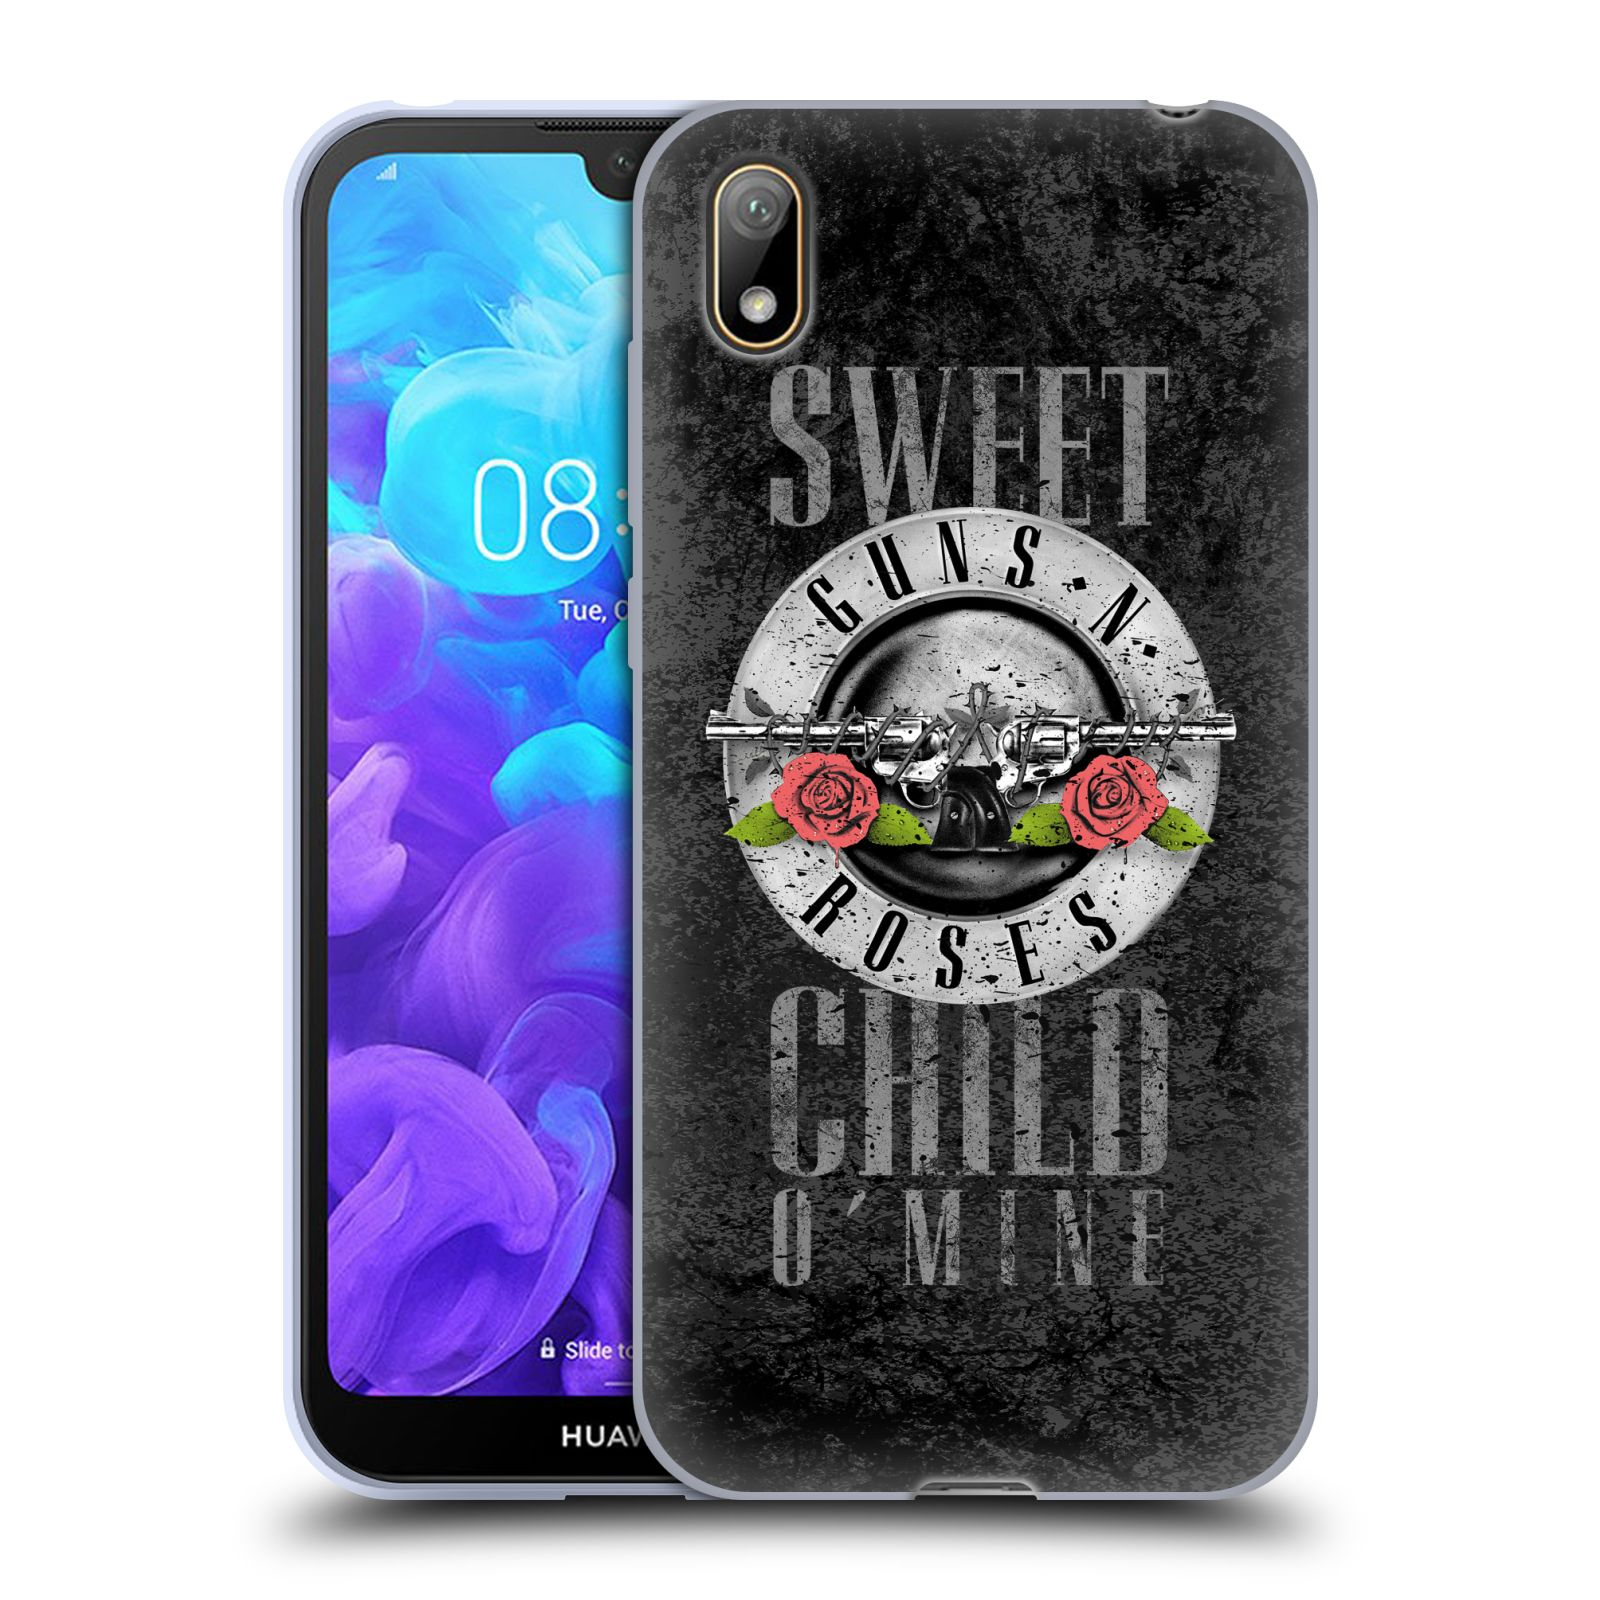 Silikonové pouzdro na mobil Honor 8S - Head Case - Guns N' Roses - Sweet Child